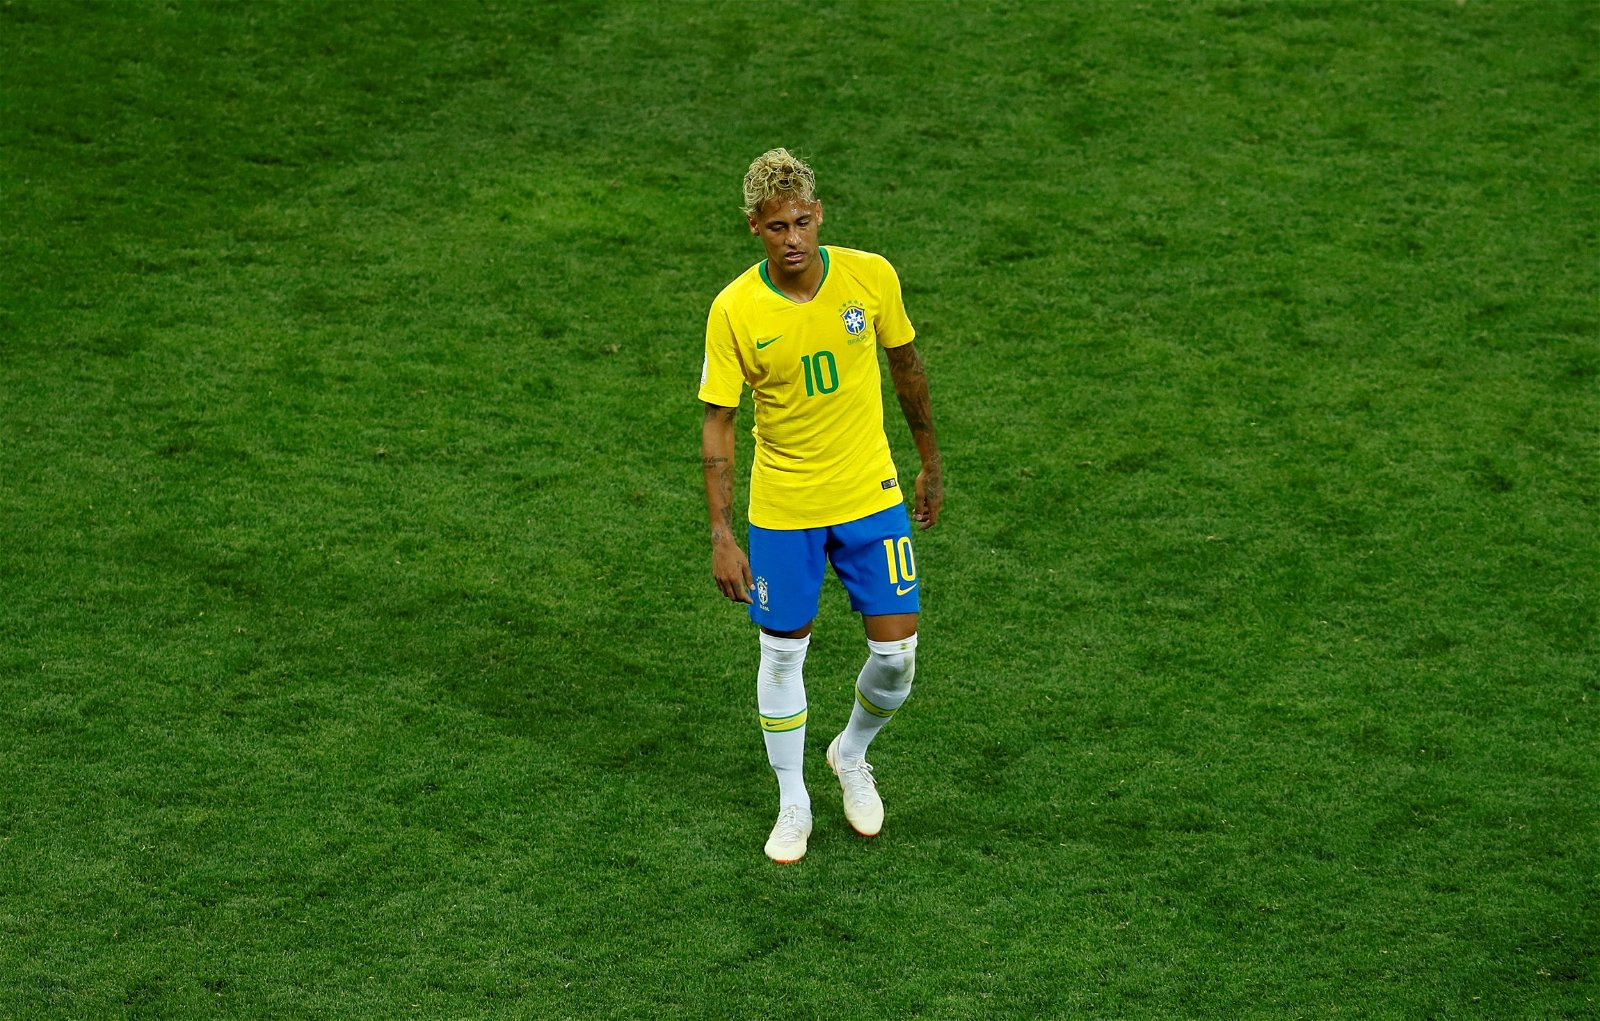 Exclusive: John Barnes on Brazil, Neymar and Messi's World Cup chances